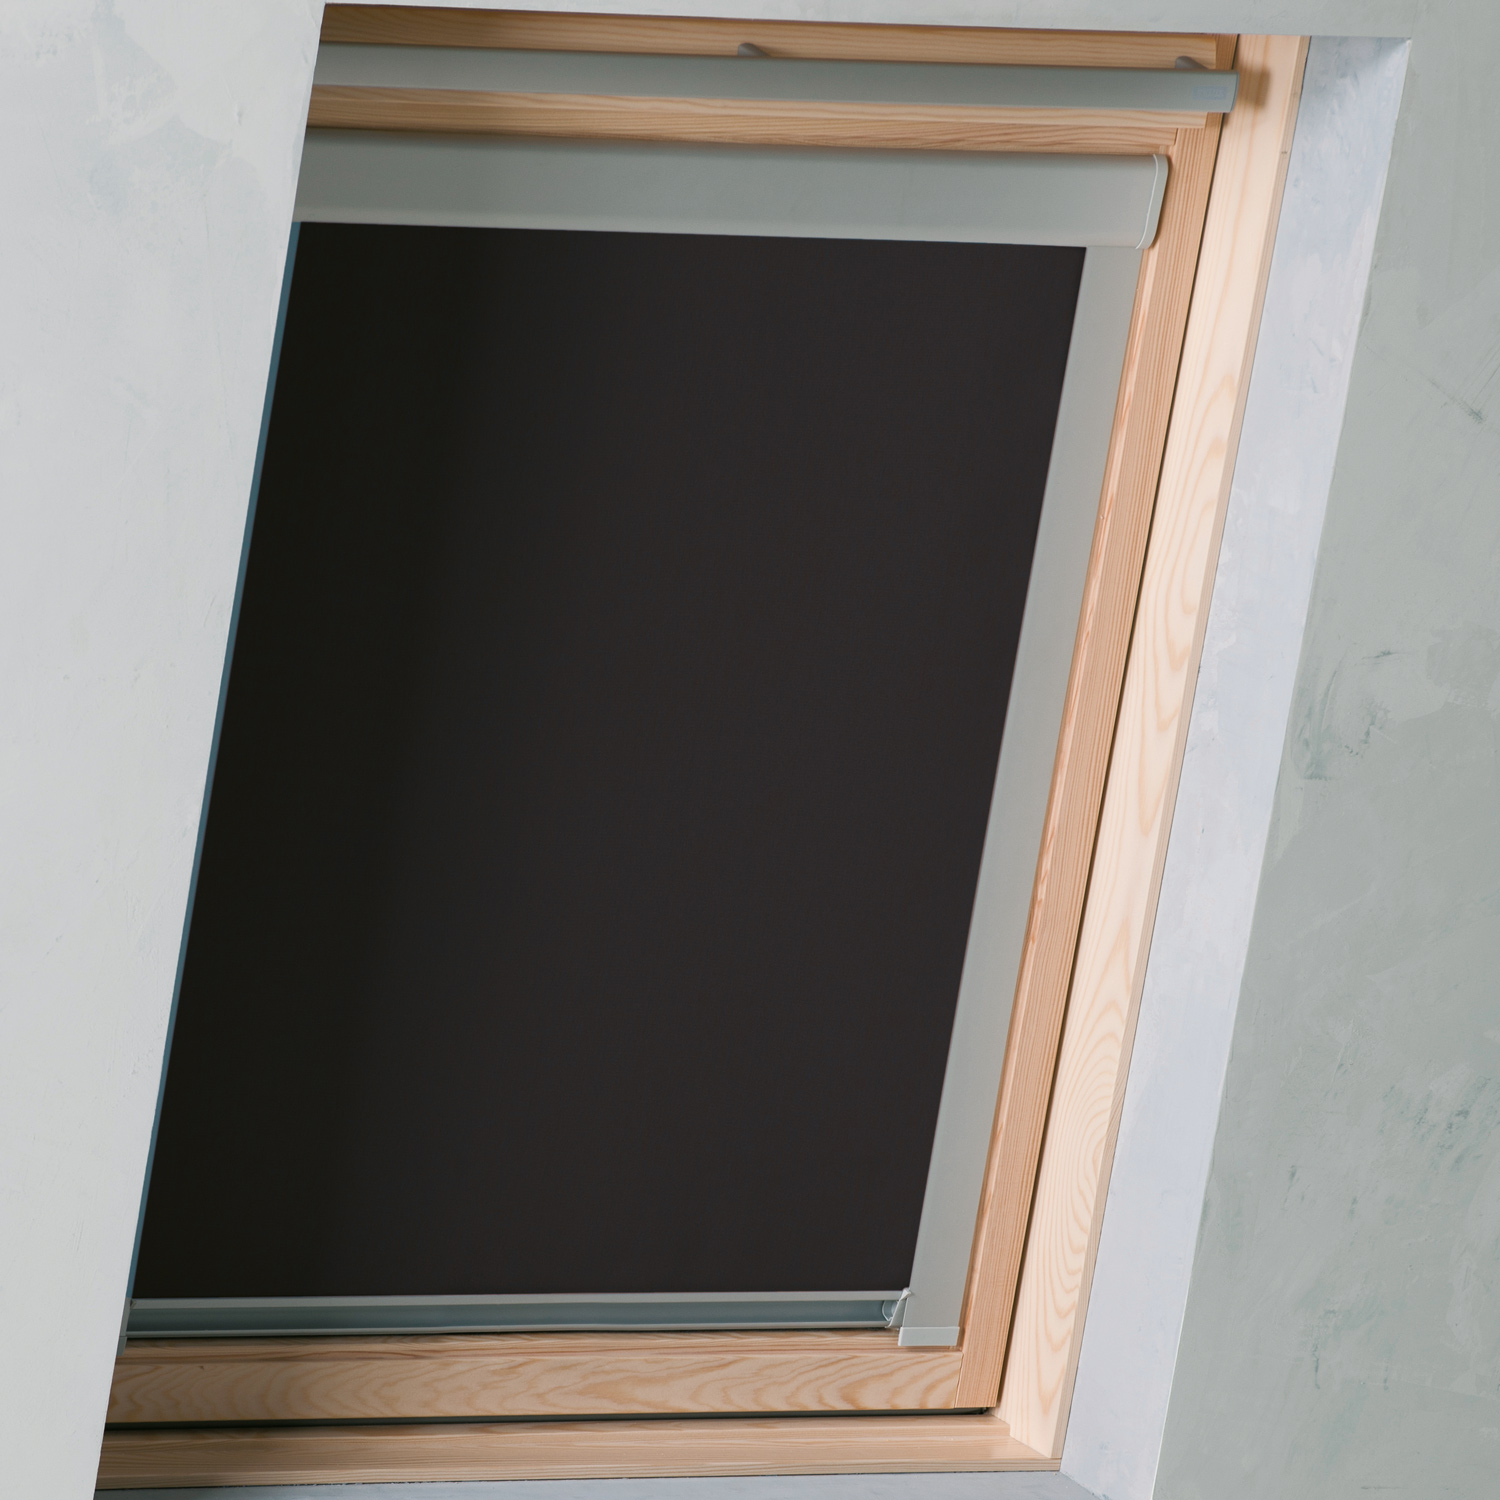 Thermo Rollo Dachfenster Thermo Rollo Dachfenster Velux Latest Velux Fenster Rollo A Gute